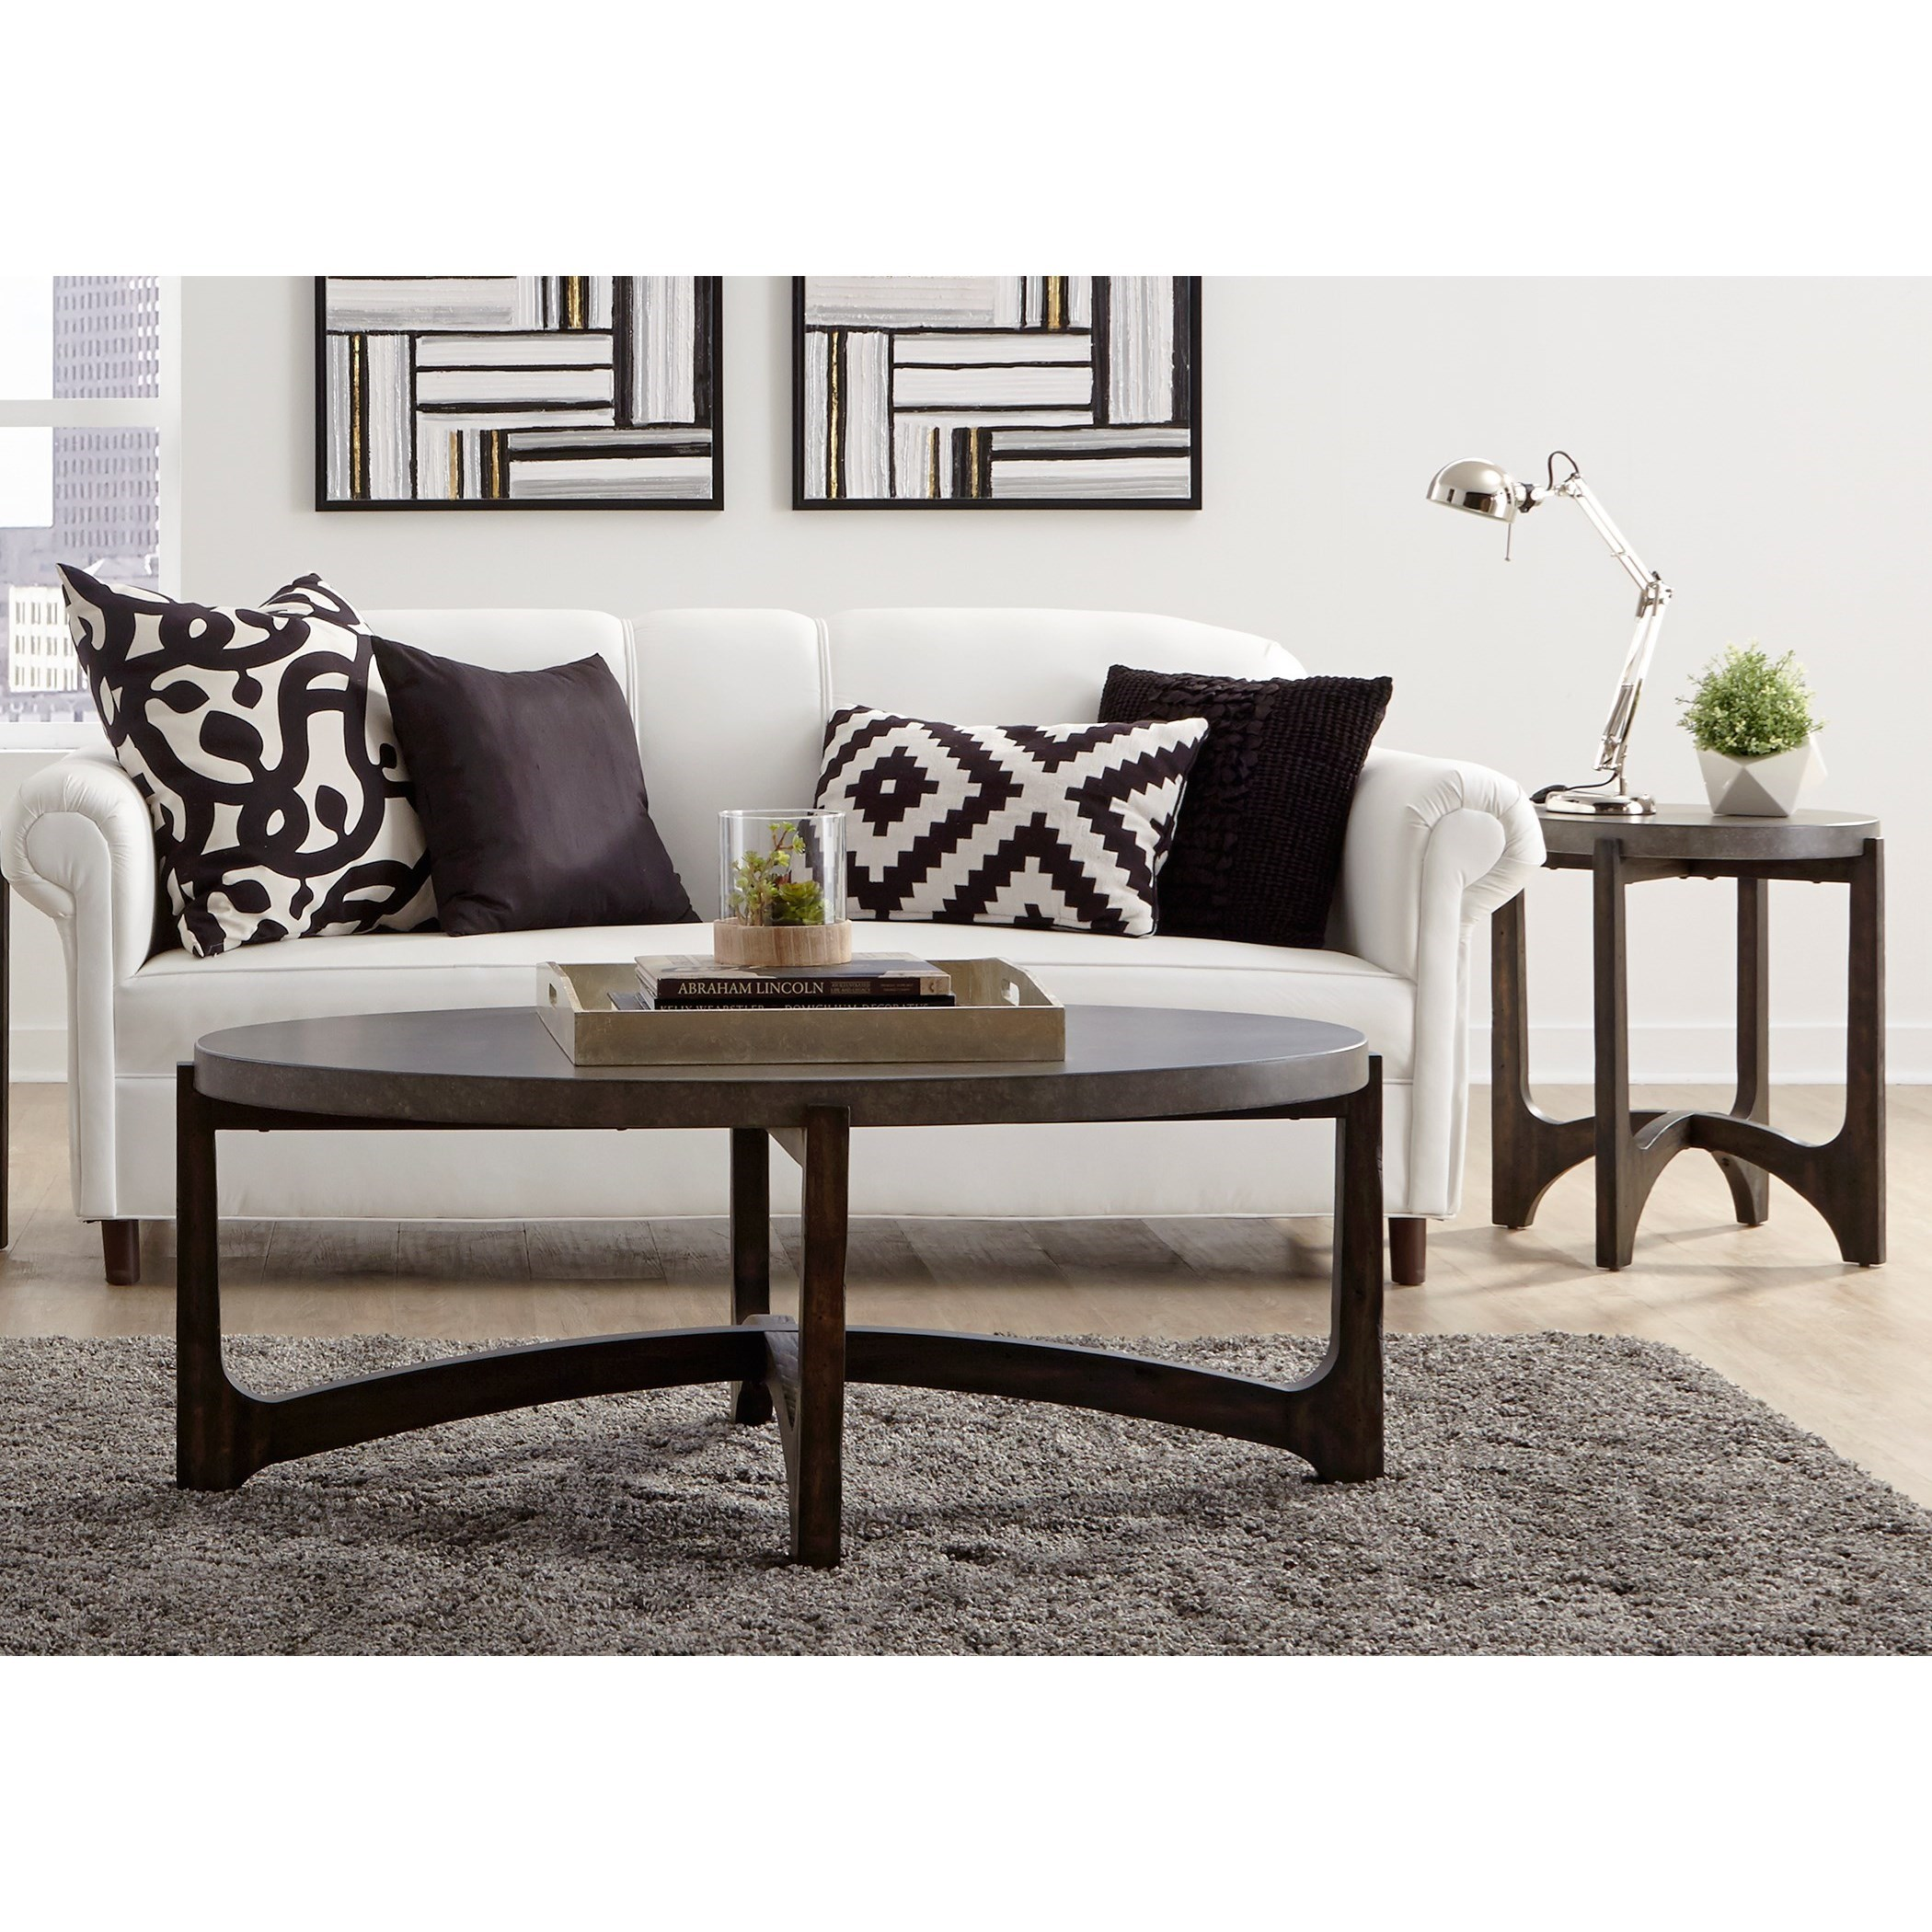 Cascade 3 Piece Occasional Table Group by Liberty Furniture at Johnny Janosik